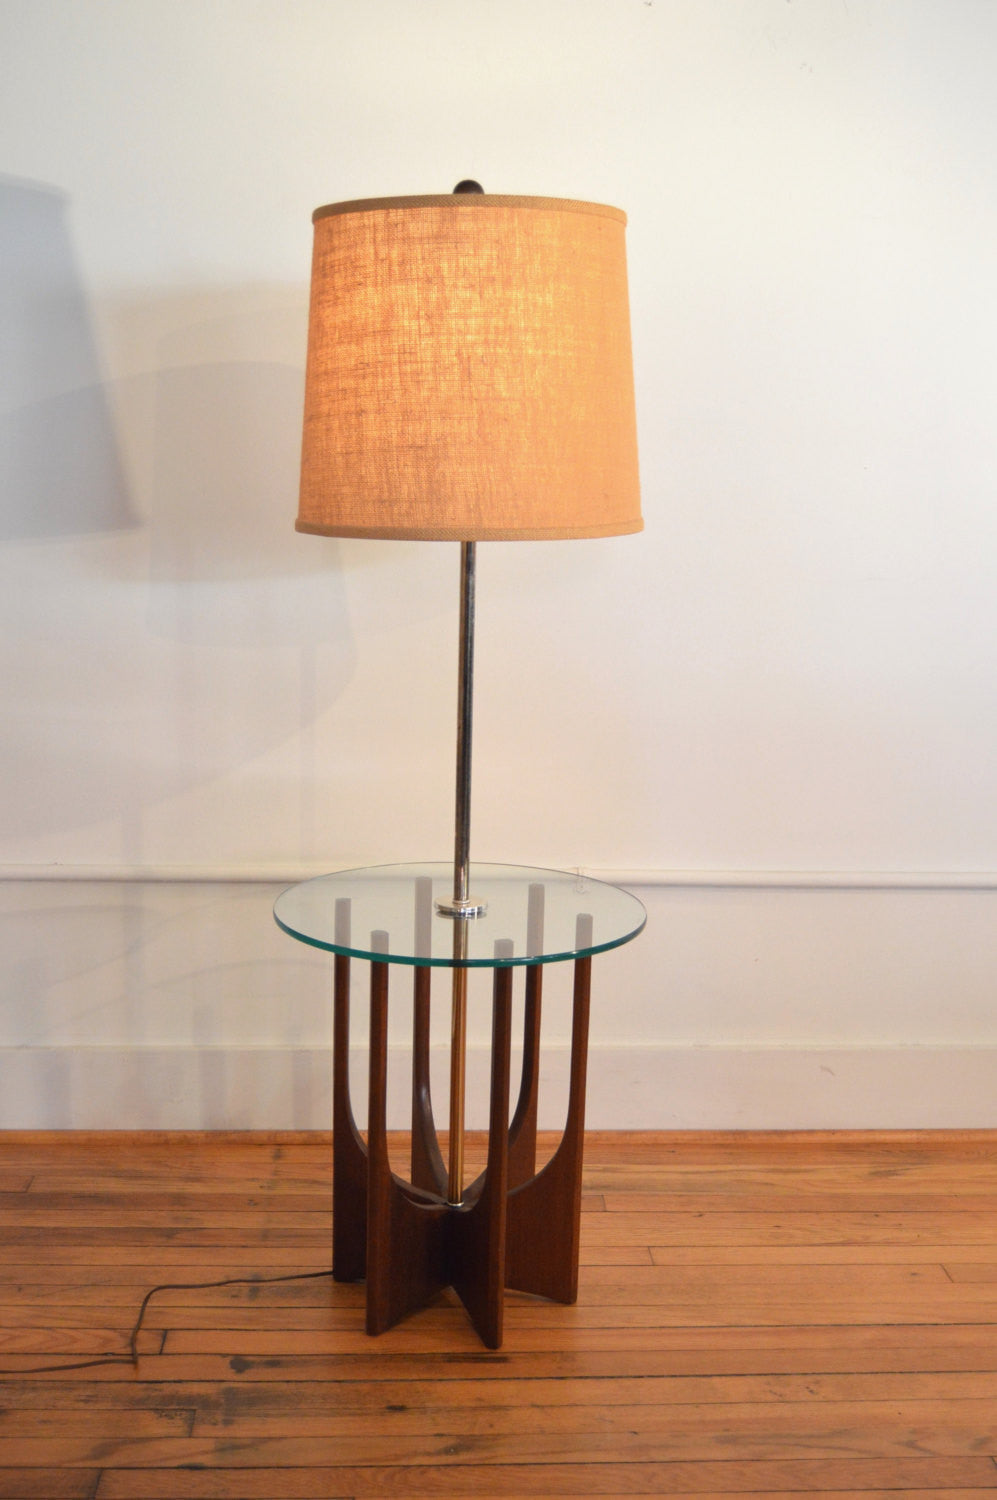 Adrian pearsall style brass and walnut floor lamp side table adrian pearsall style brass and walnut floor lamp side table mid century modern floor lamp geotapseo Image collections